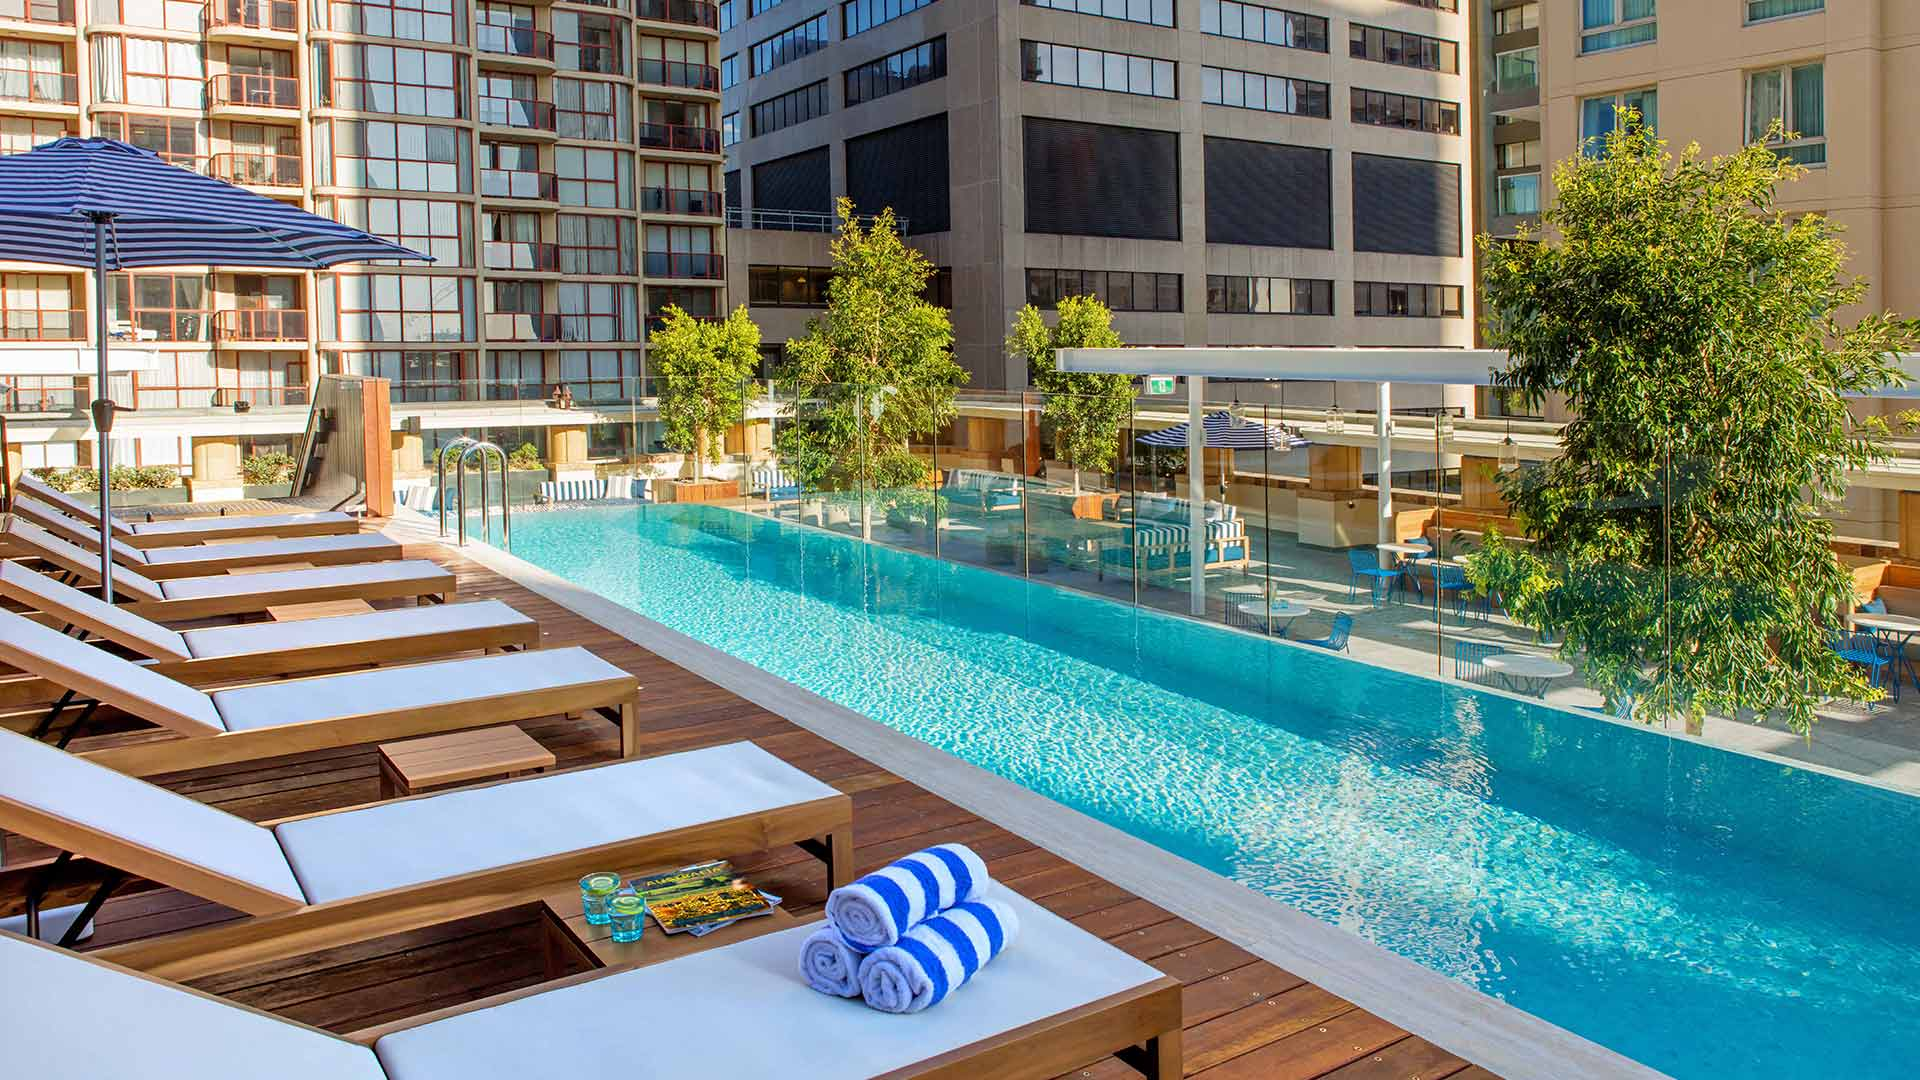 10 of the best hotel pools in Sydney